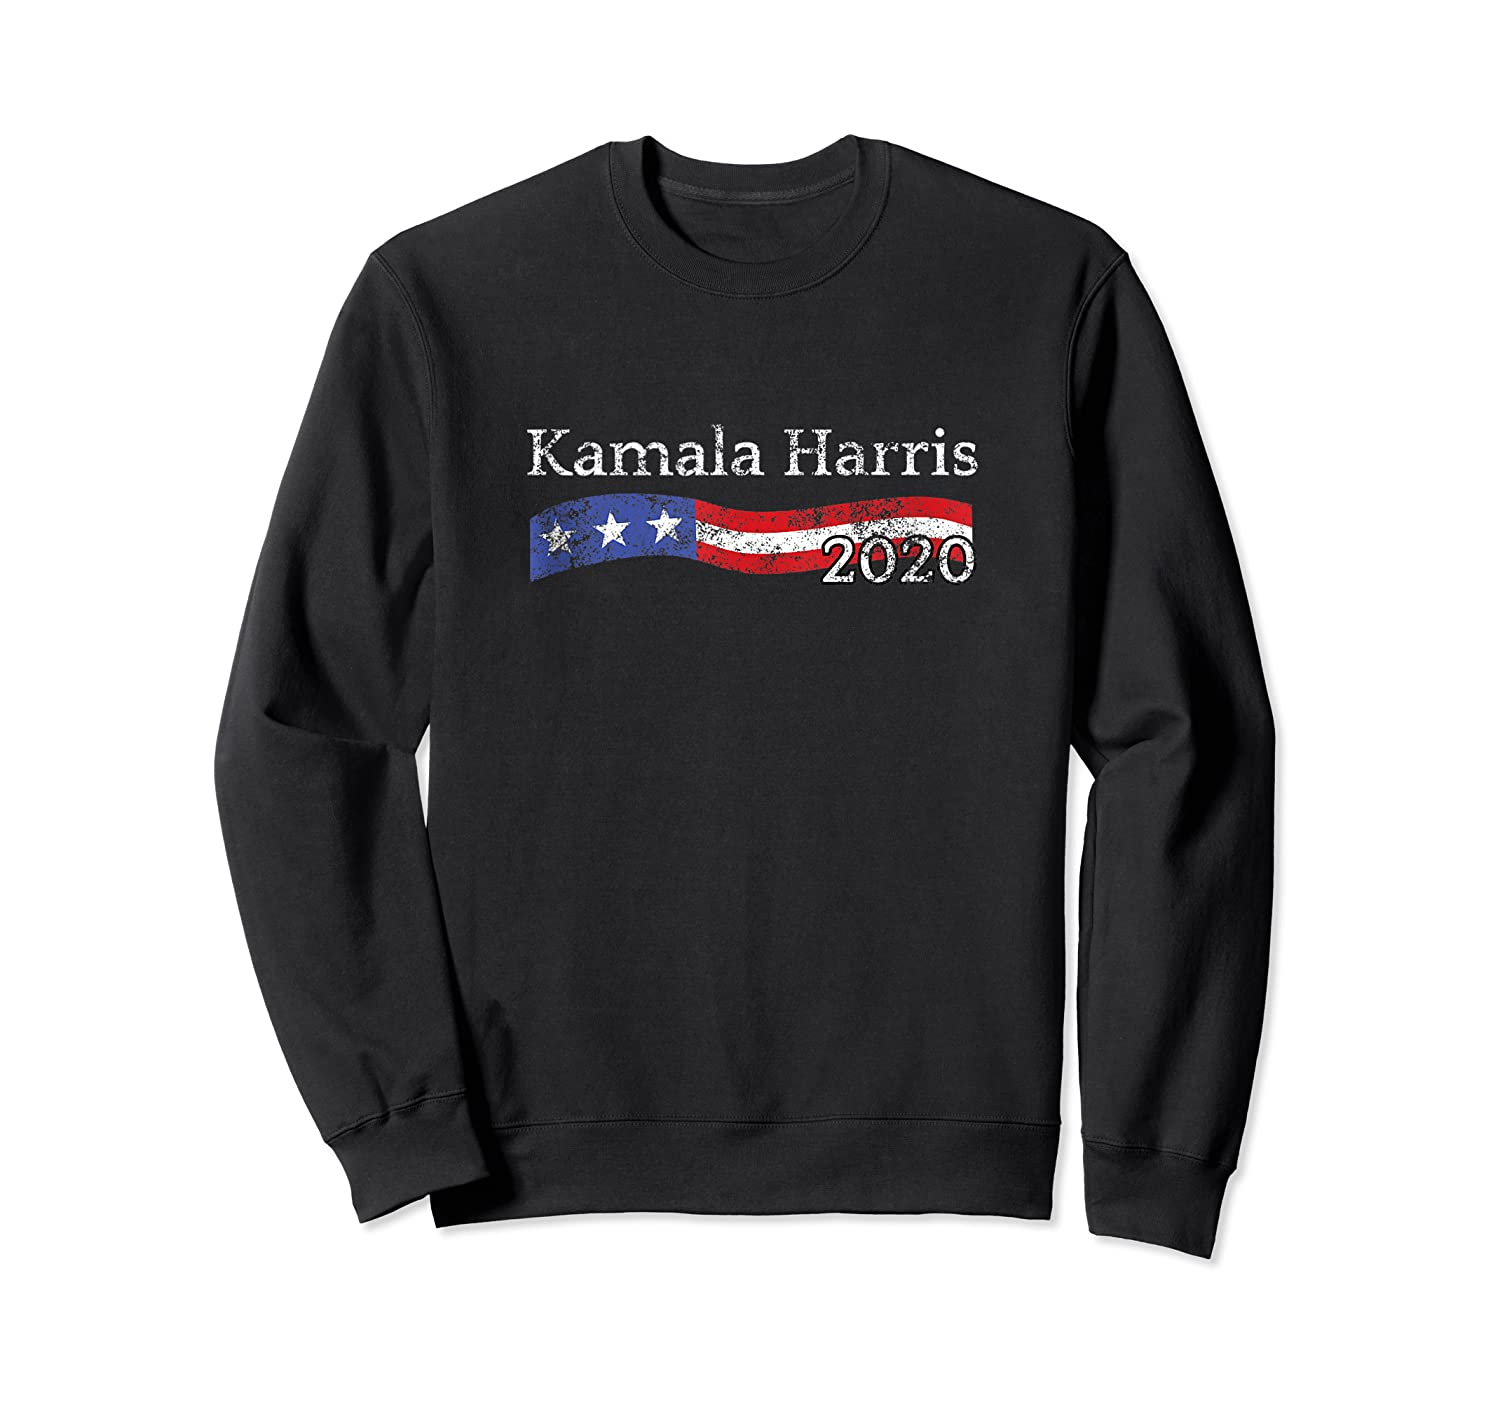 Kamala Harris For President 2020 Distressed For The People Shirts Crewneck Sweater